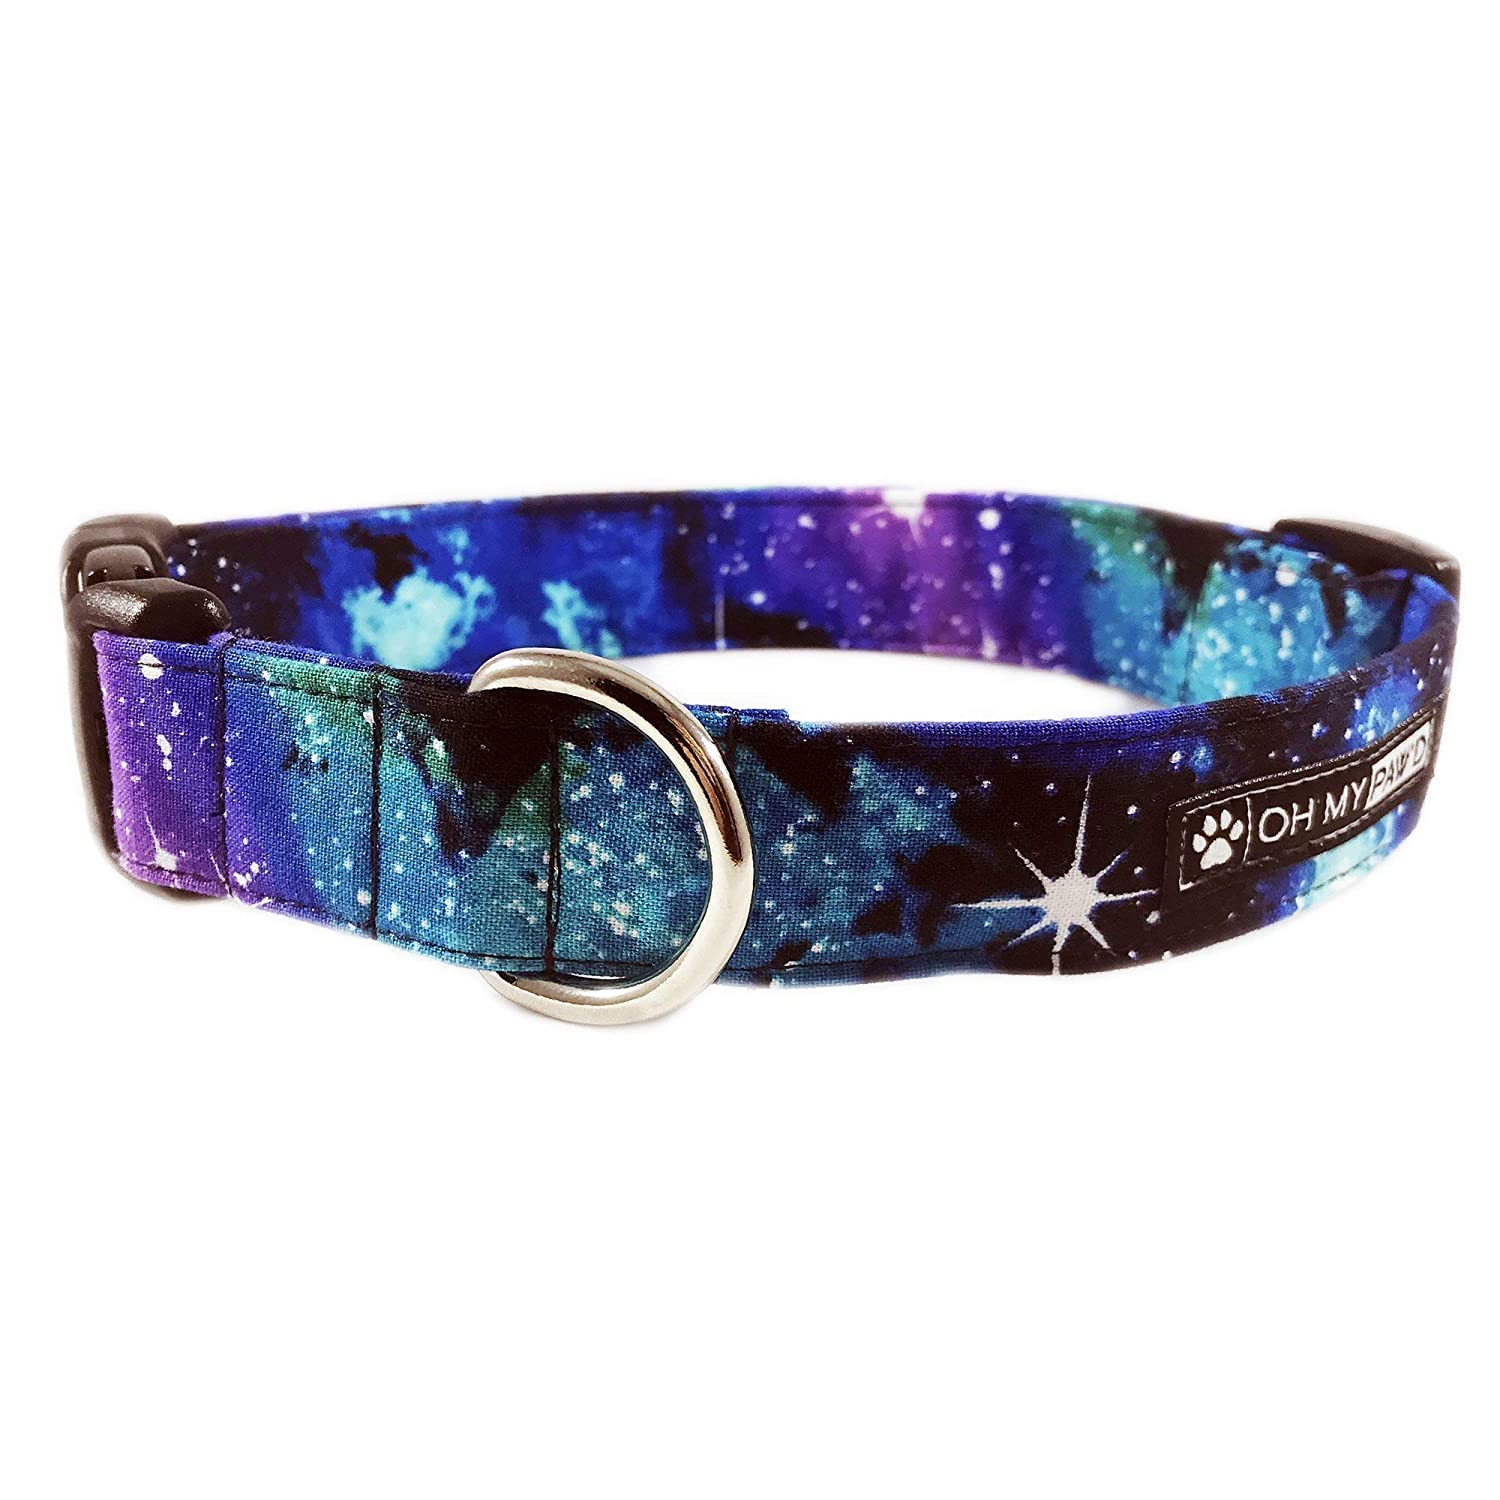 Hand Made Dog Collar - Galaxy Print Collar for Pets Size Medium 3/4